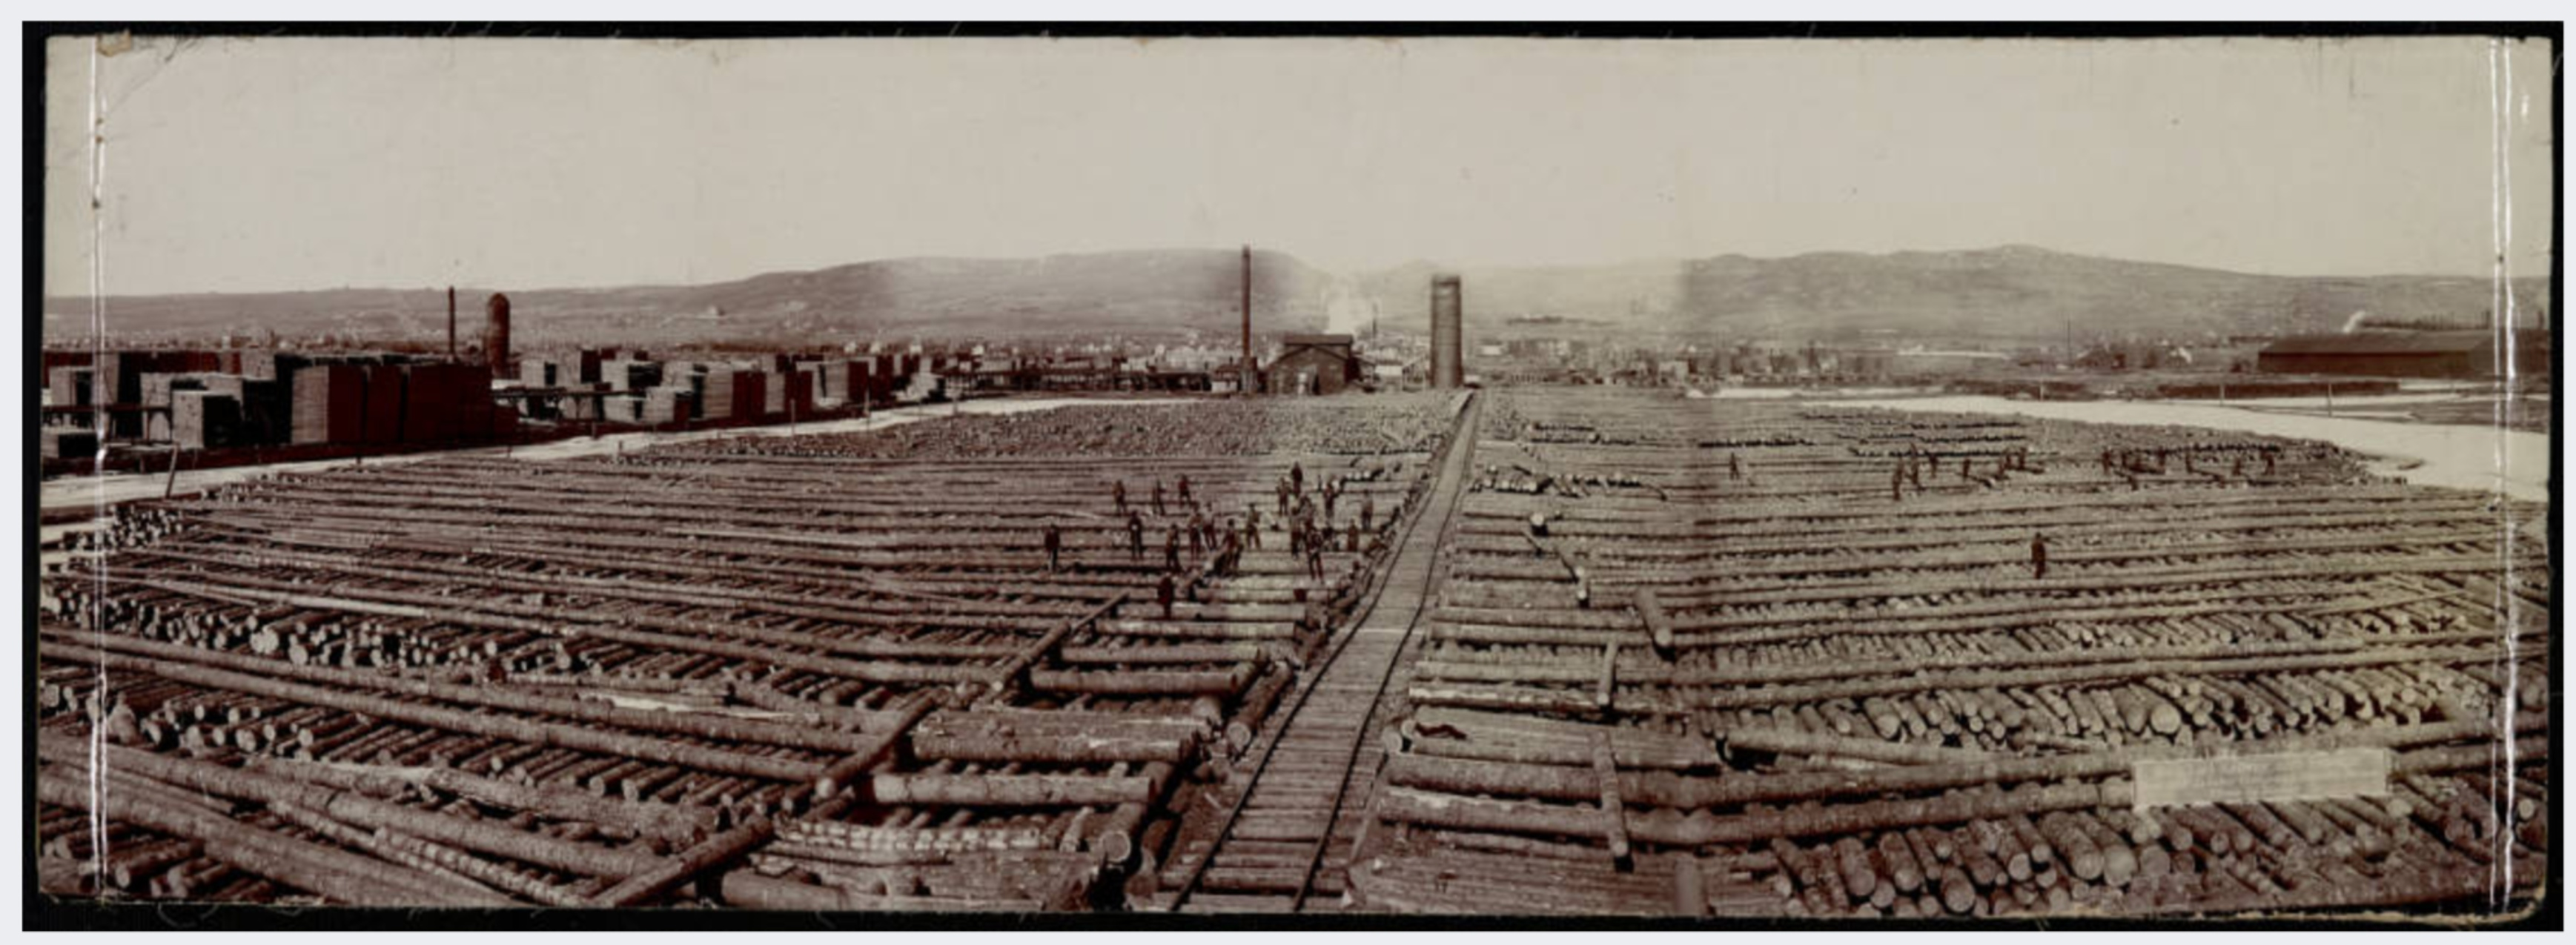 No. 1, Log Rollway and Sawmill Red Cliff Lumber Company, Duluth, Minnesota. Image courtesy of University of Minnesota Duluth, Kathryn A. Martin Library, Northeast Minnesota Historical Center Collections.